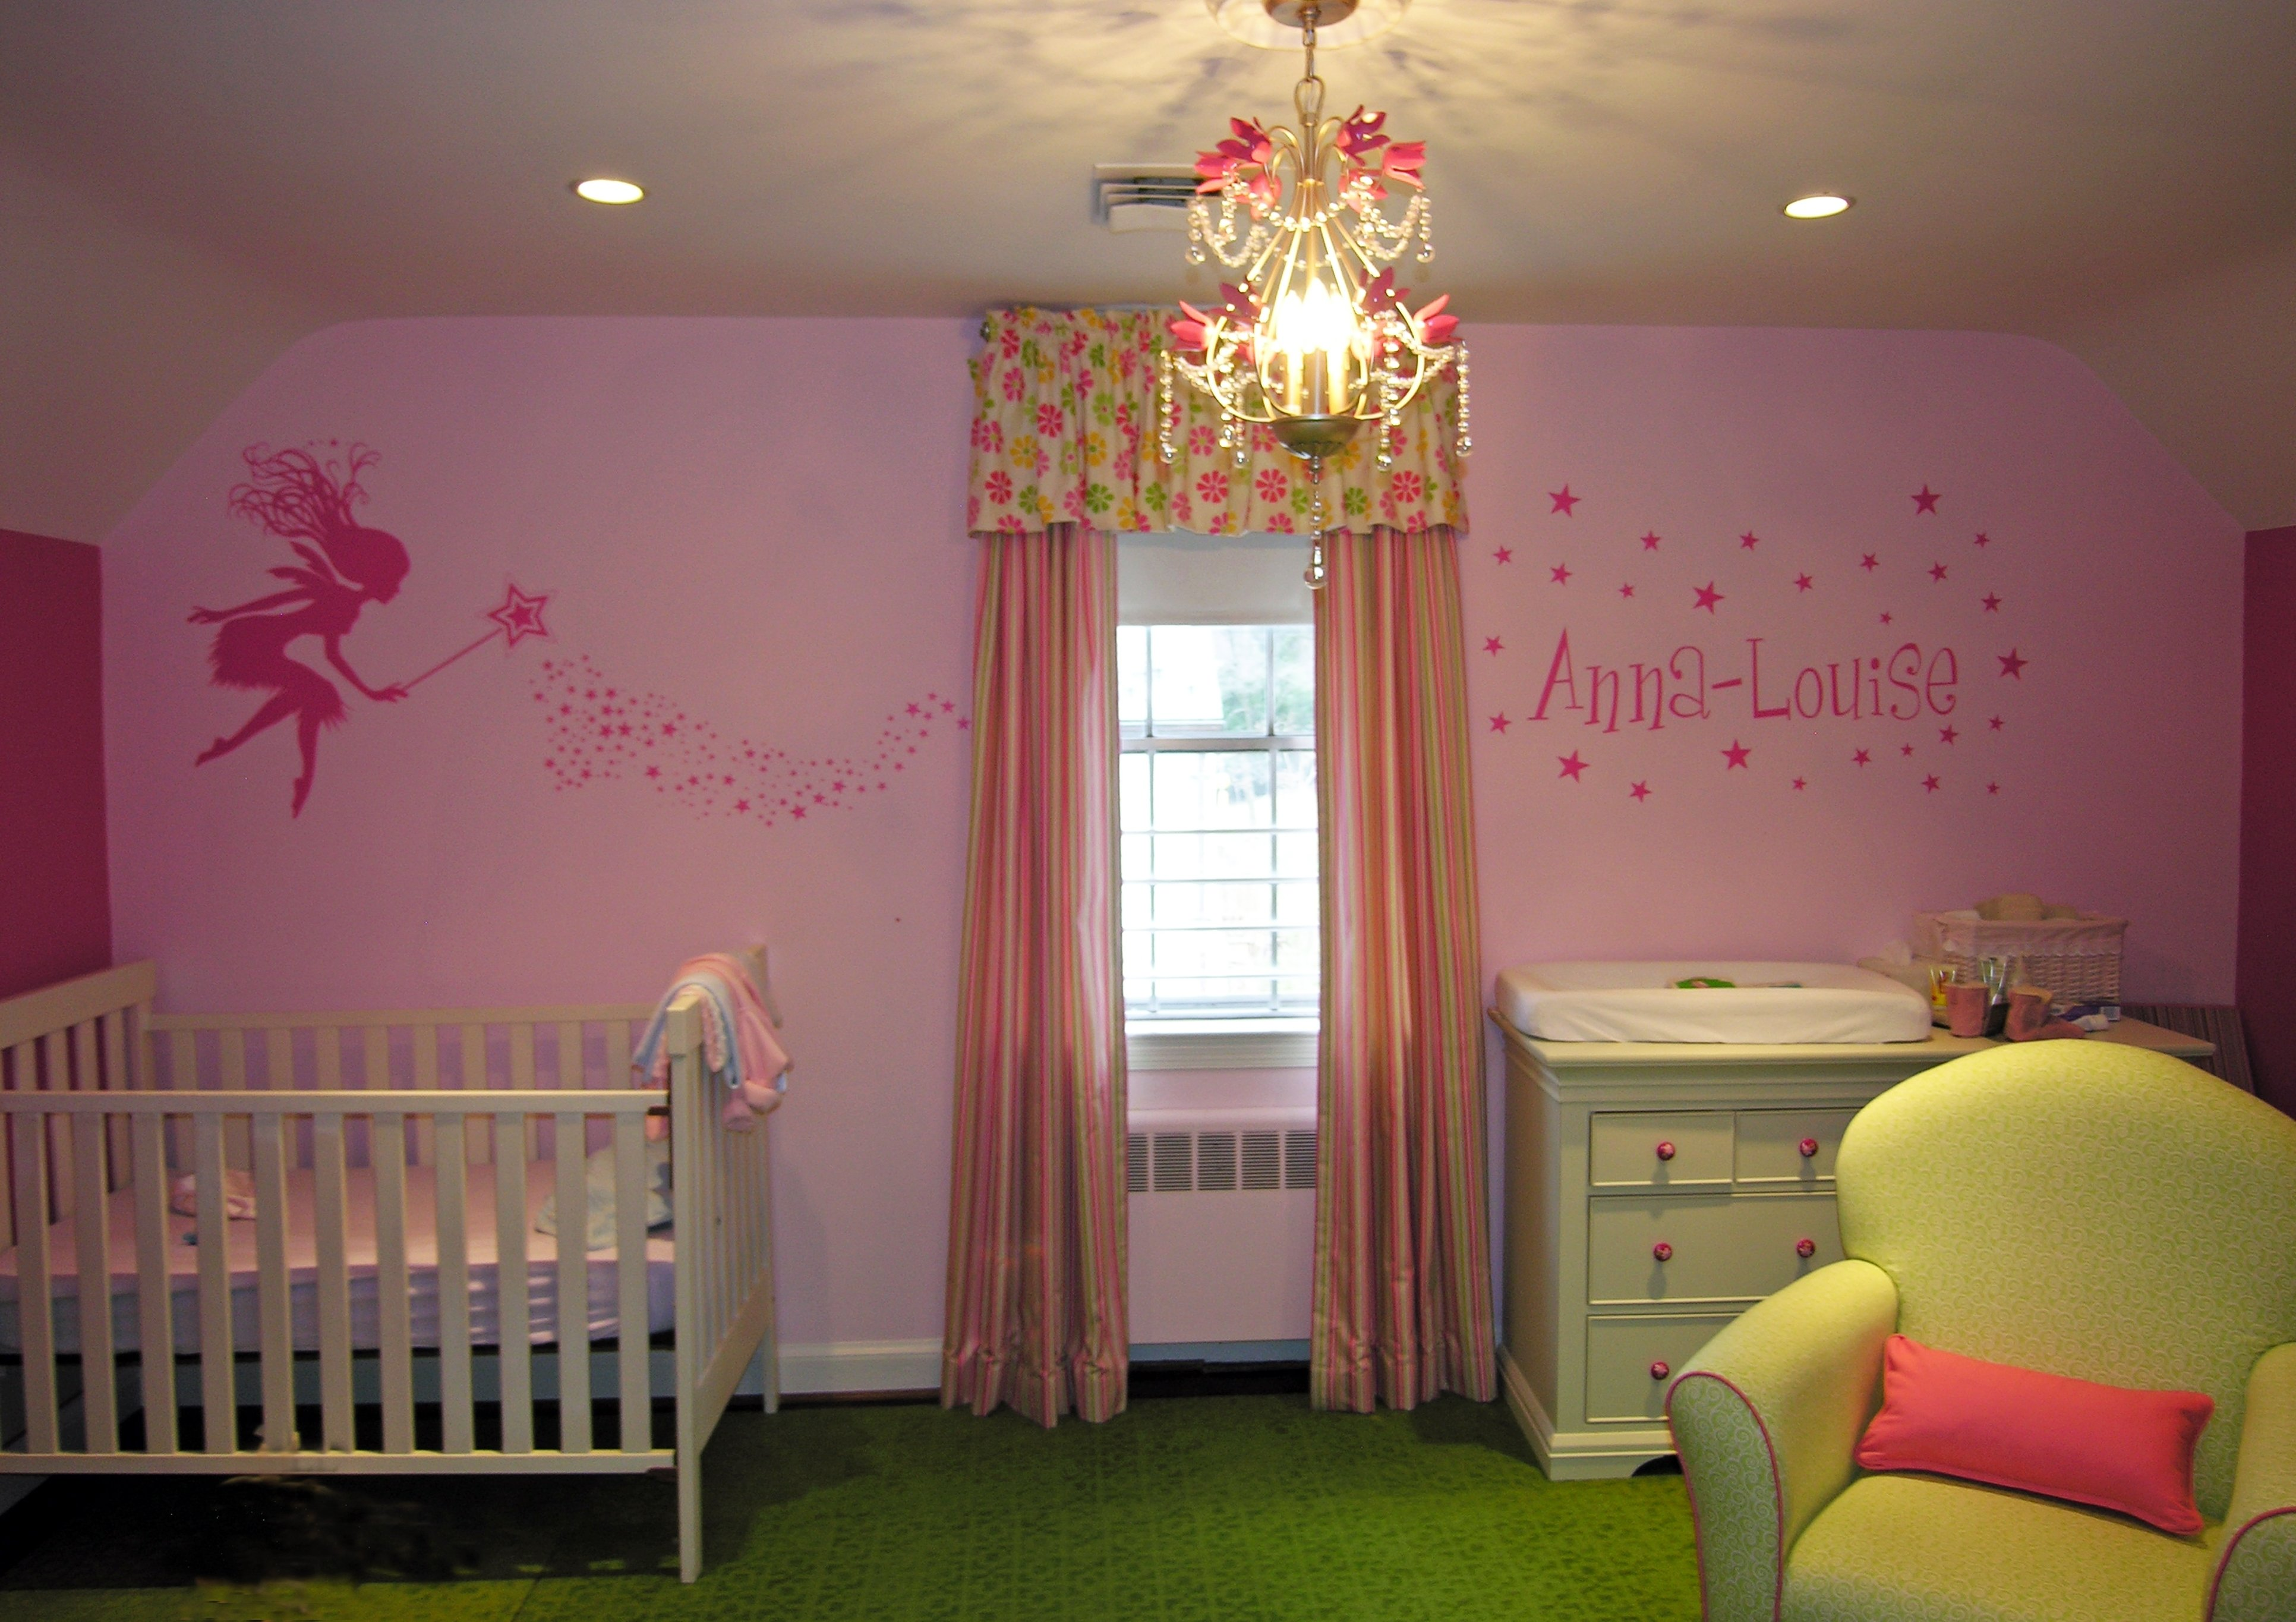 10 Perfect Little Girls Room Decor Ideas baby room decor for girl cute decoration nursery pink ideas princess